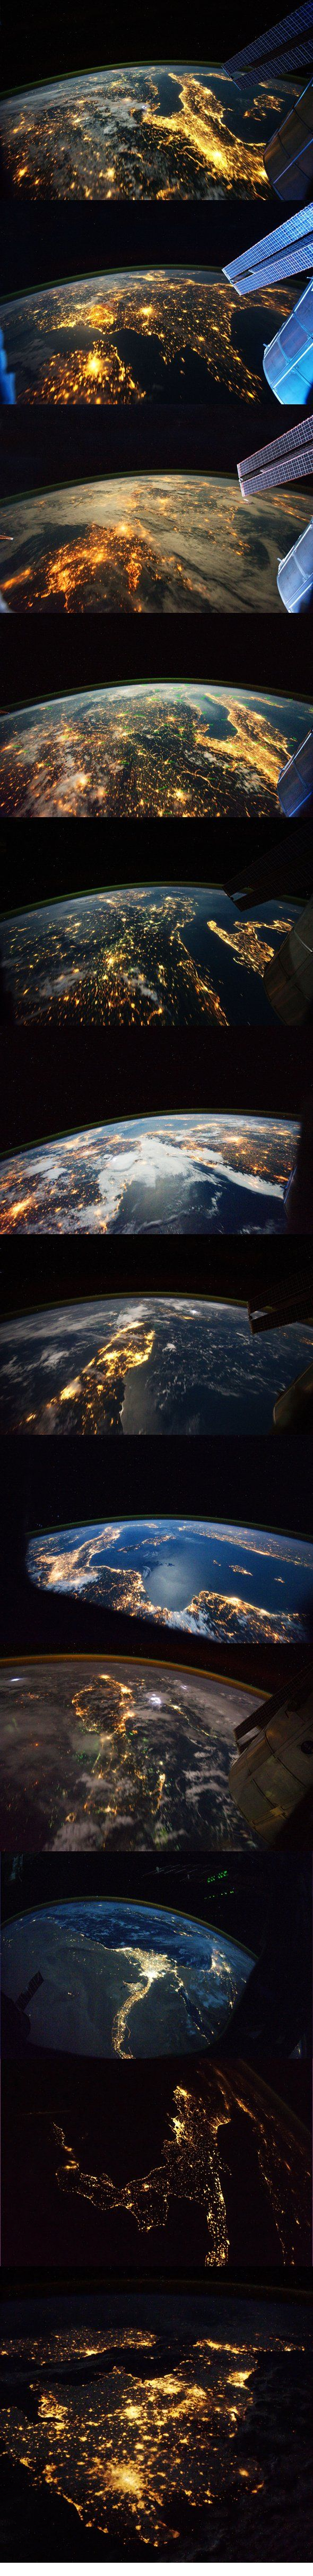 Earth at night from space...in love with these pictures. So breathtaking!